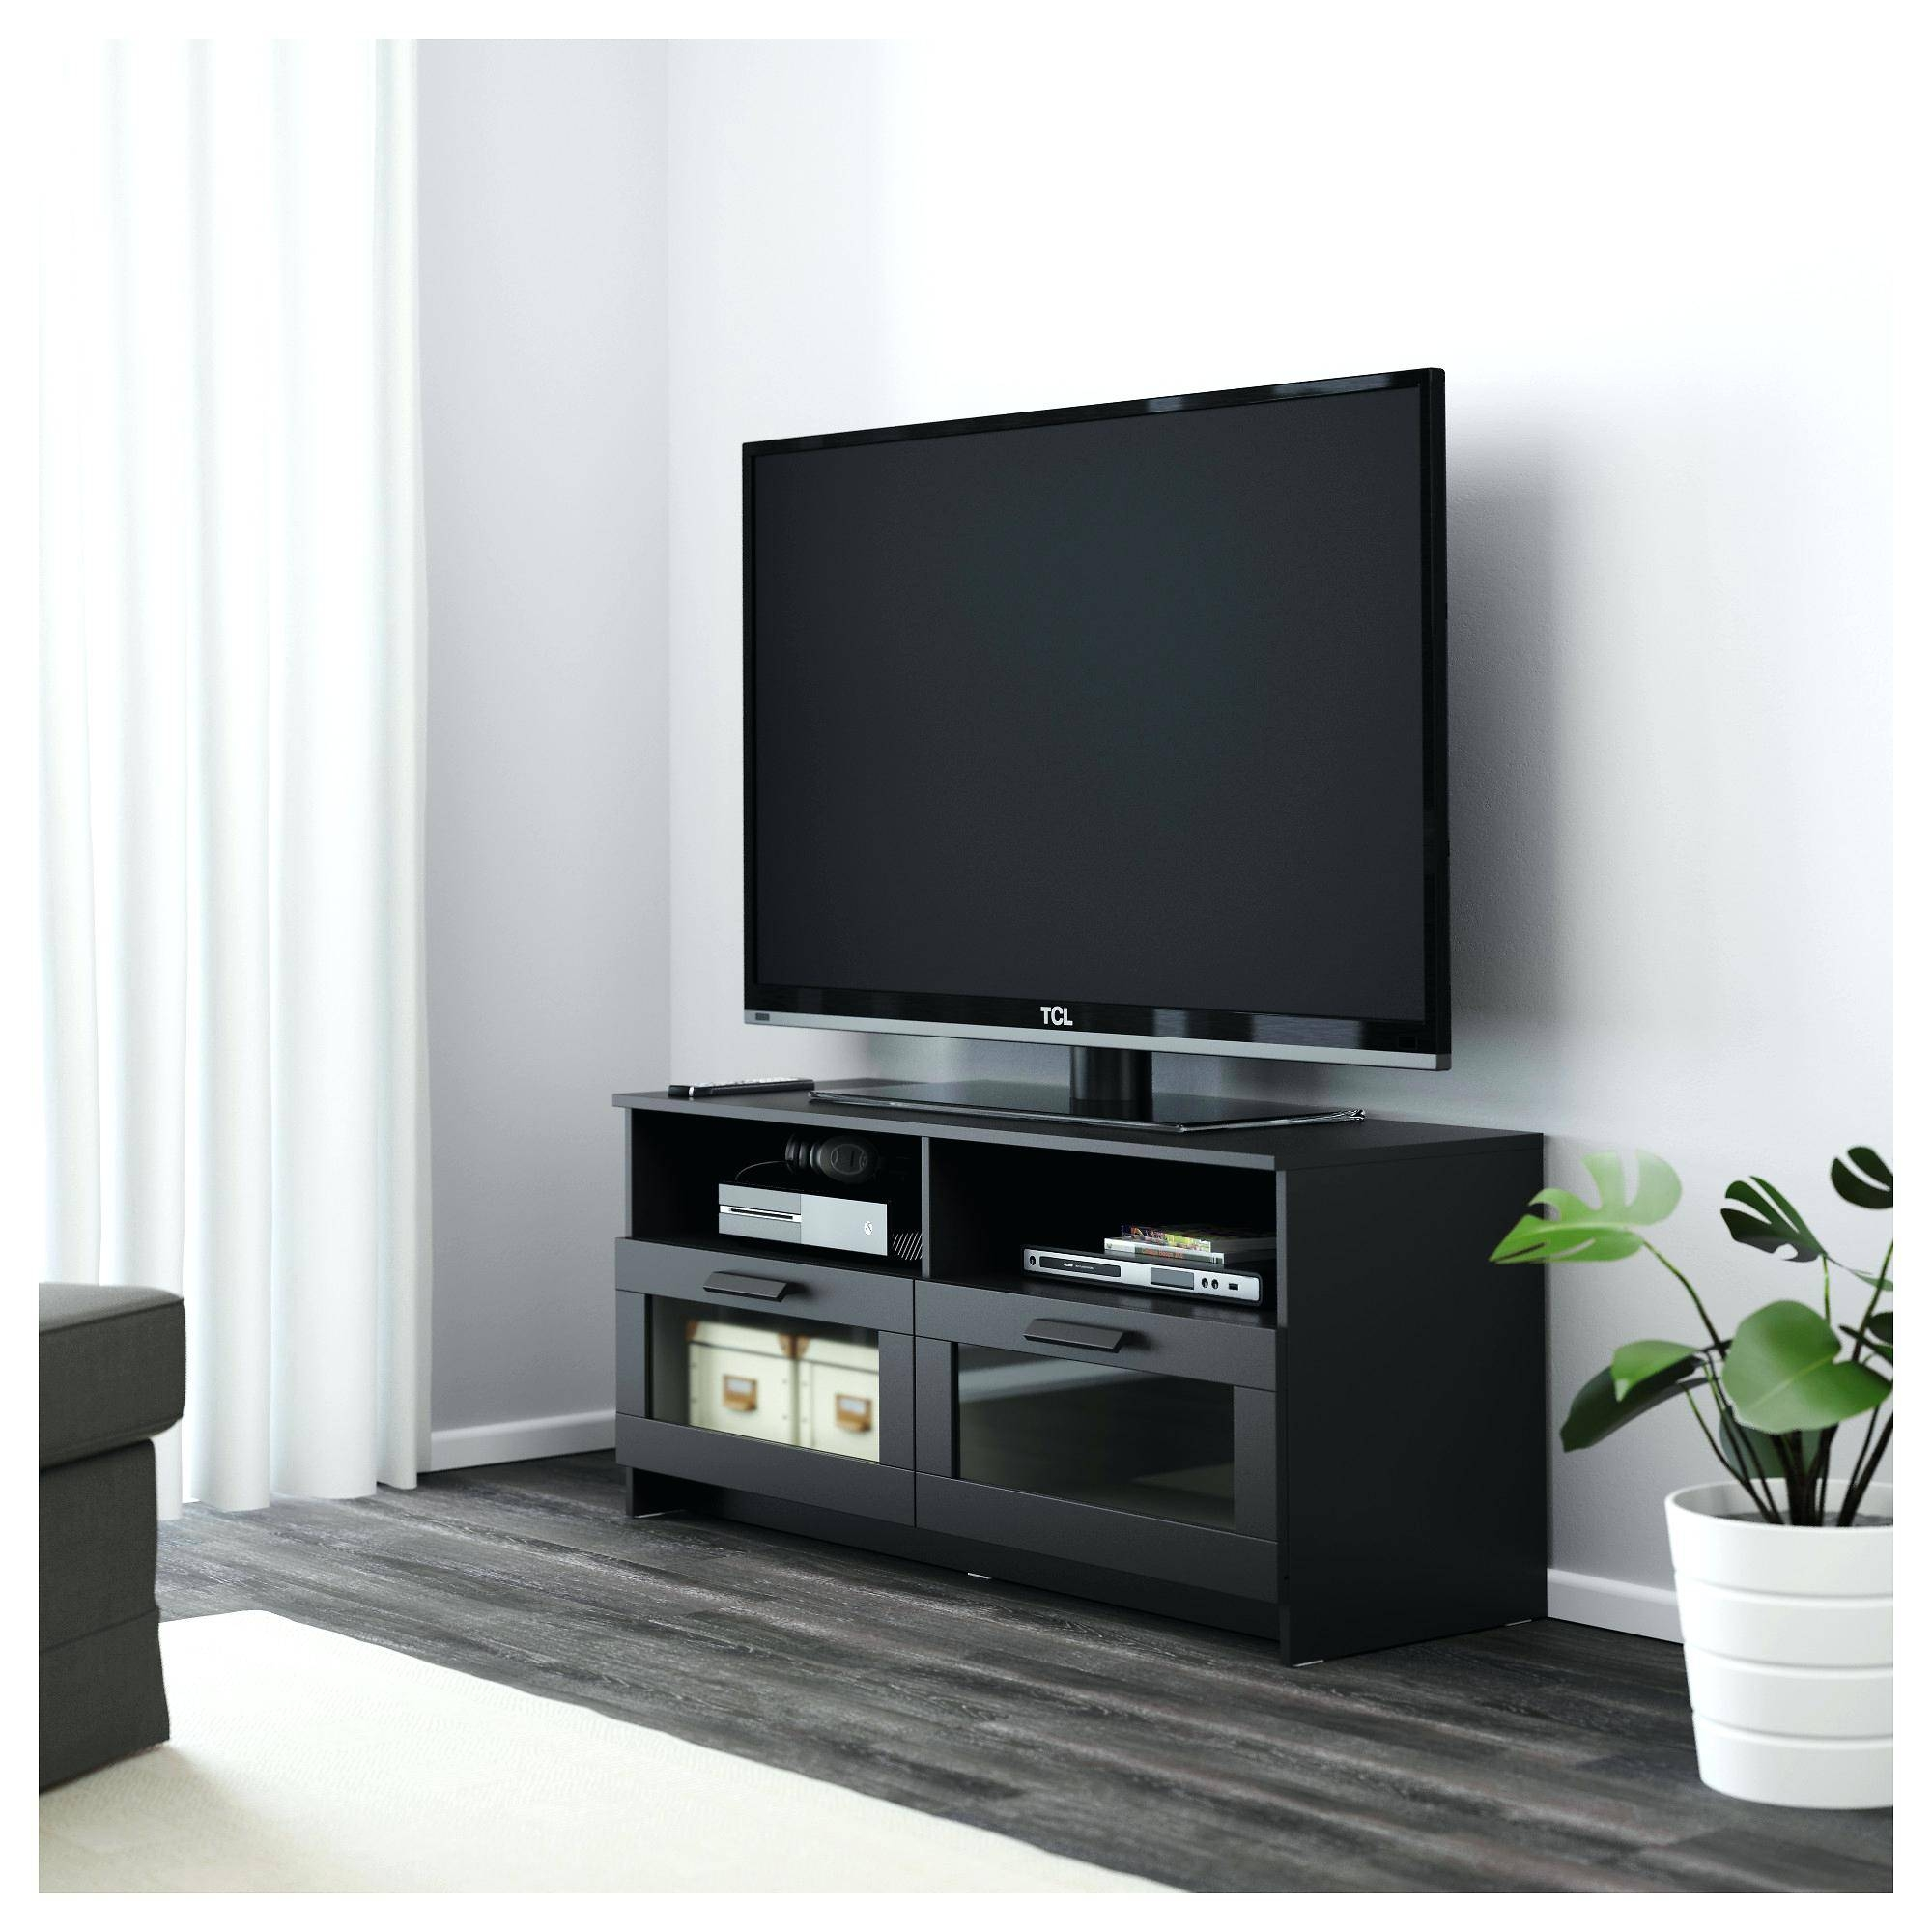 Tv Stand : Large Size Of Tv Standstv Stands Walmart Com Stand For with Techlink Bench Corner Tv Stands (Image 11 of 15)